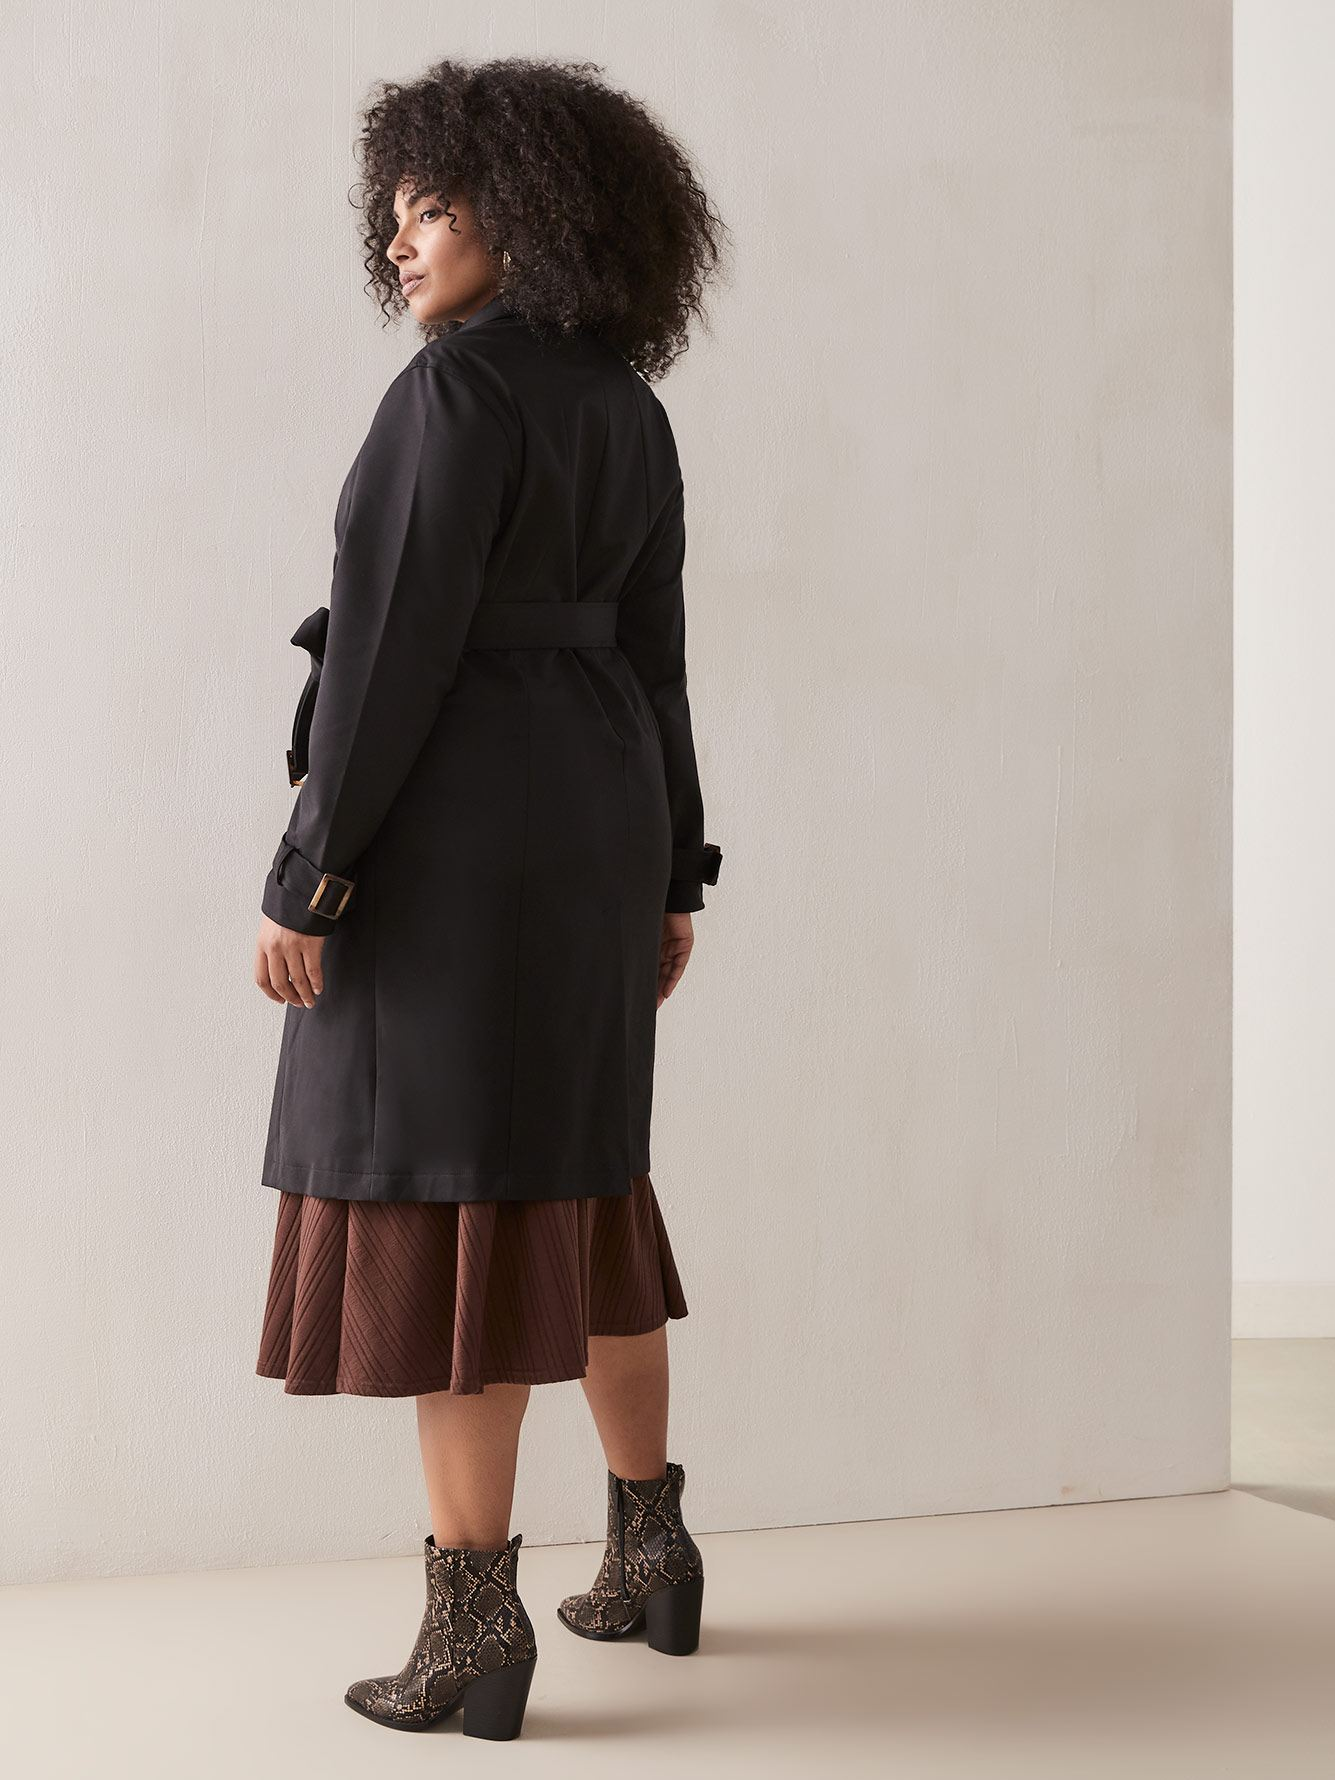 Manteau trench noir